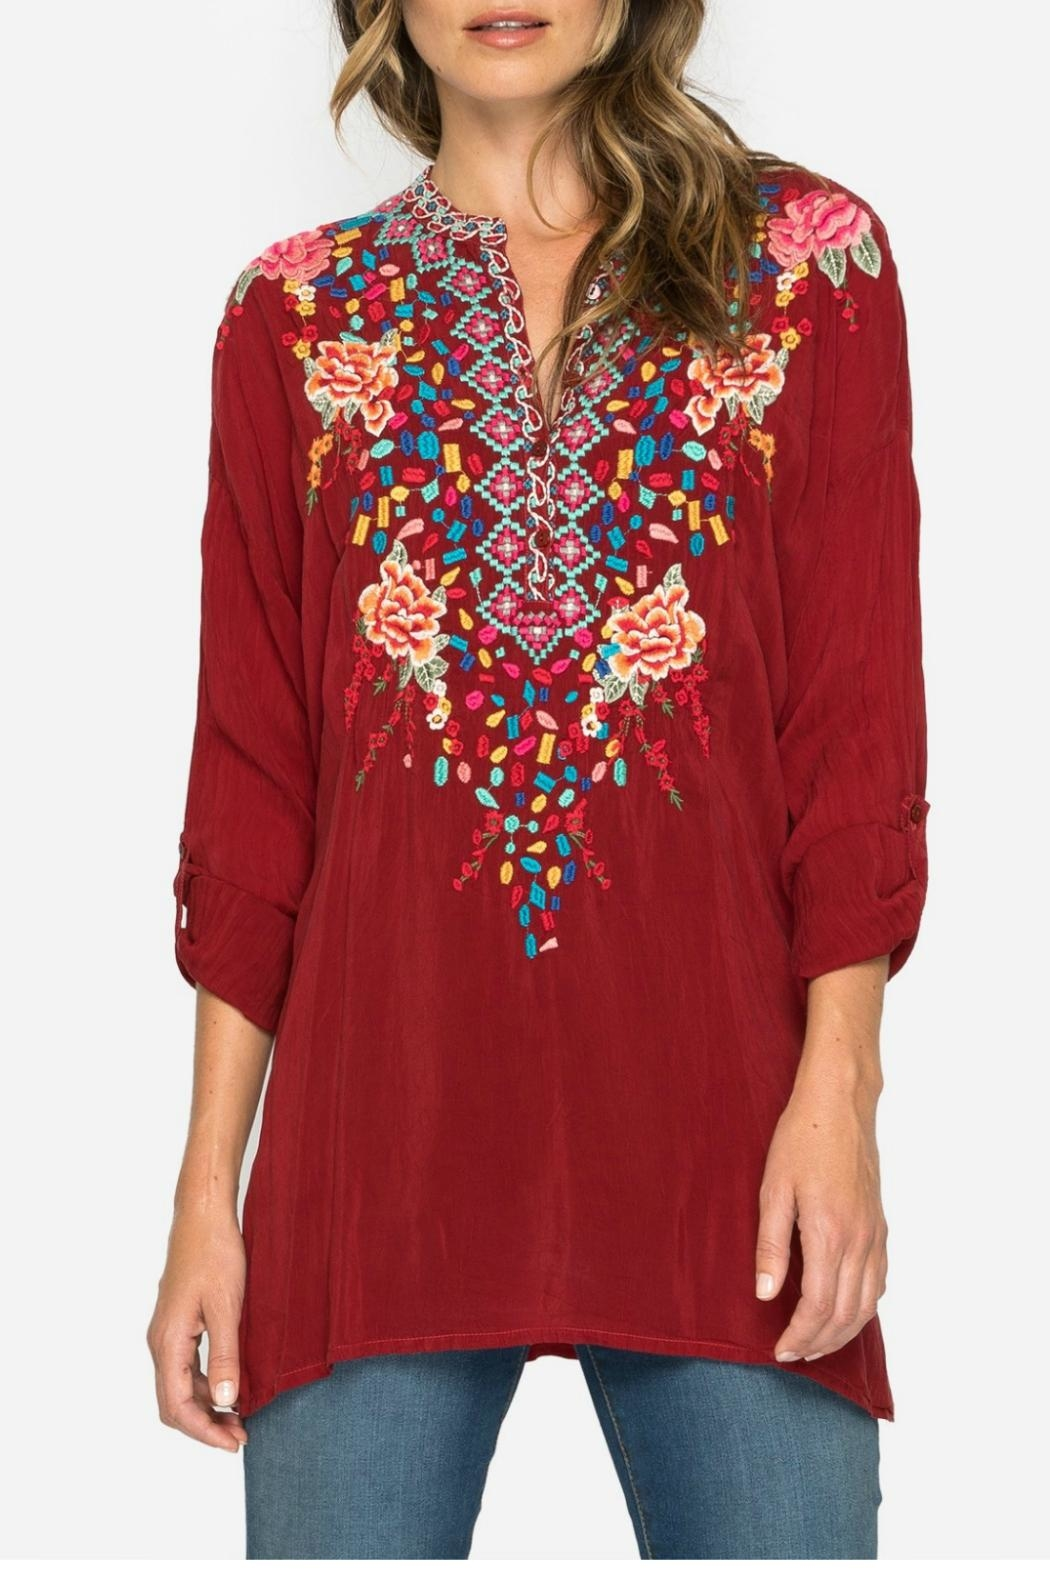 Johnny Was Gemstone Tunic Top - Main Image